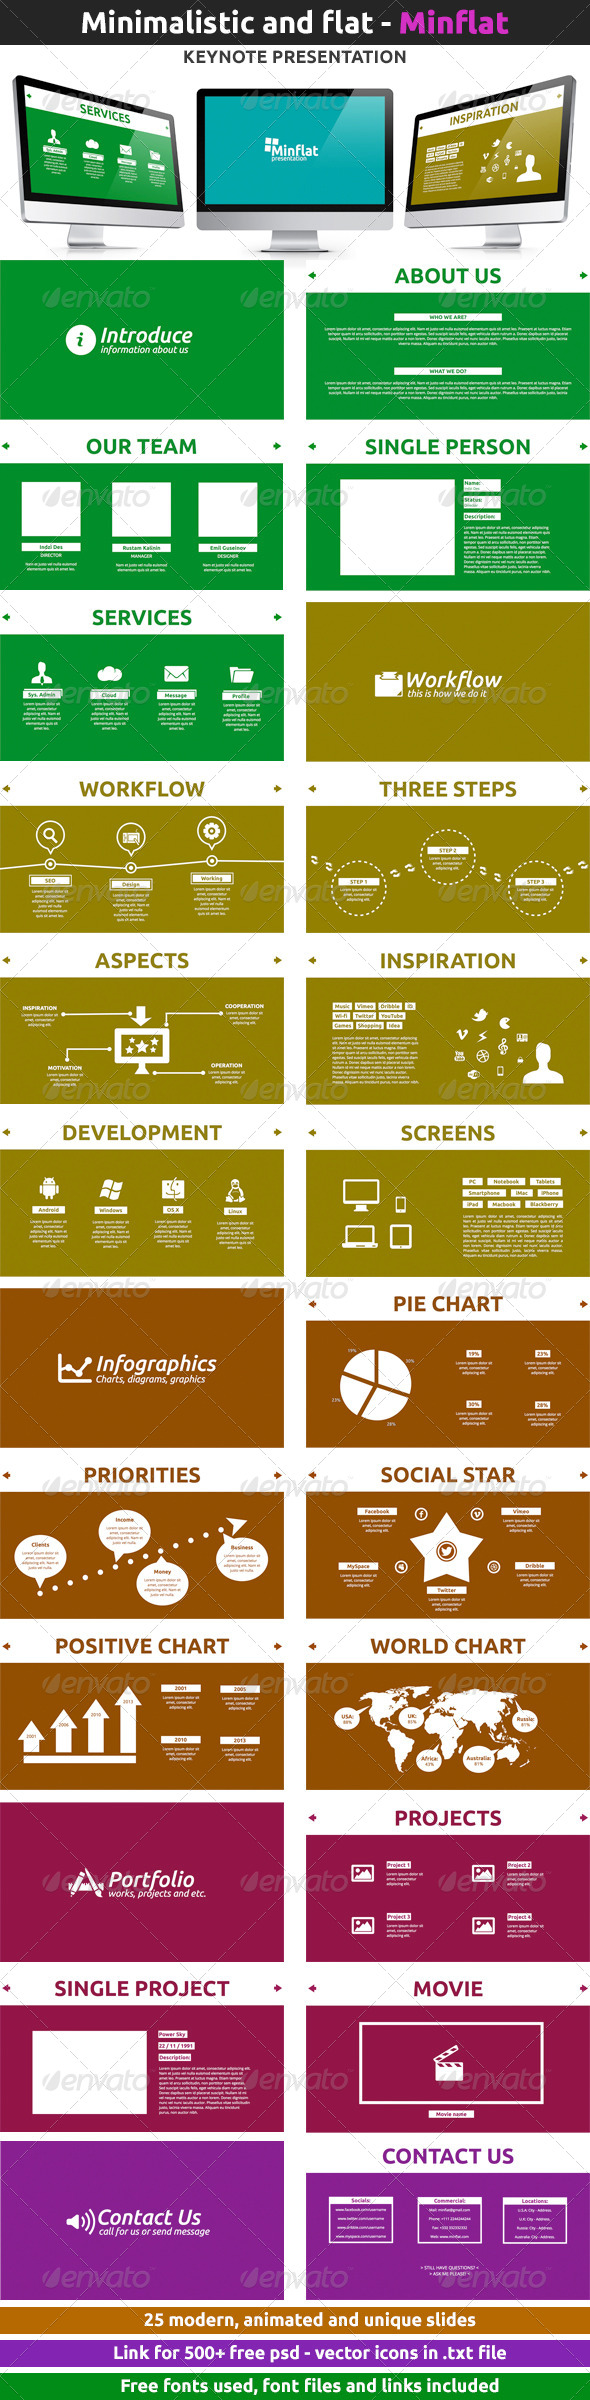 GraphicRiver Minflat Keynote Presentation 5343187